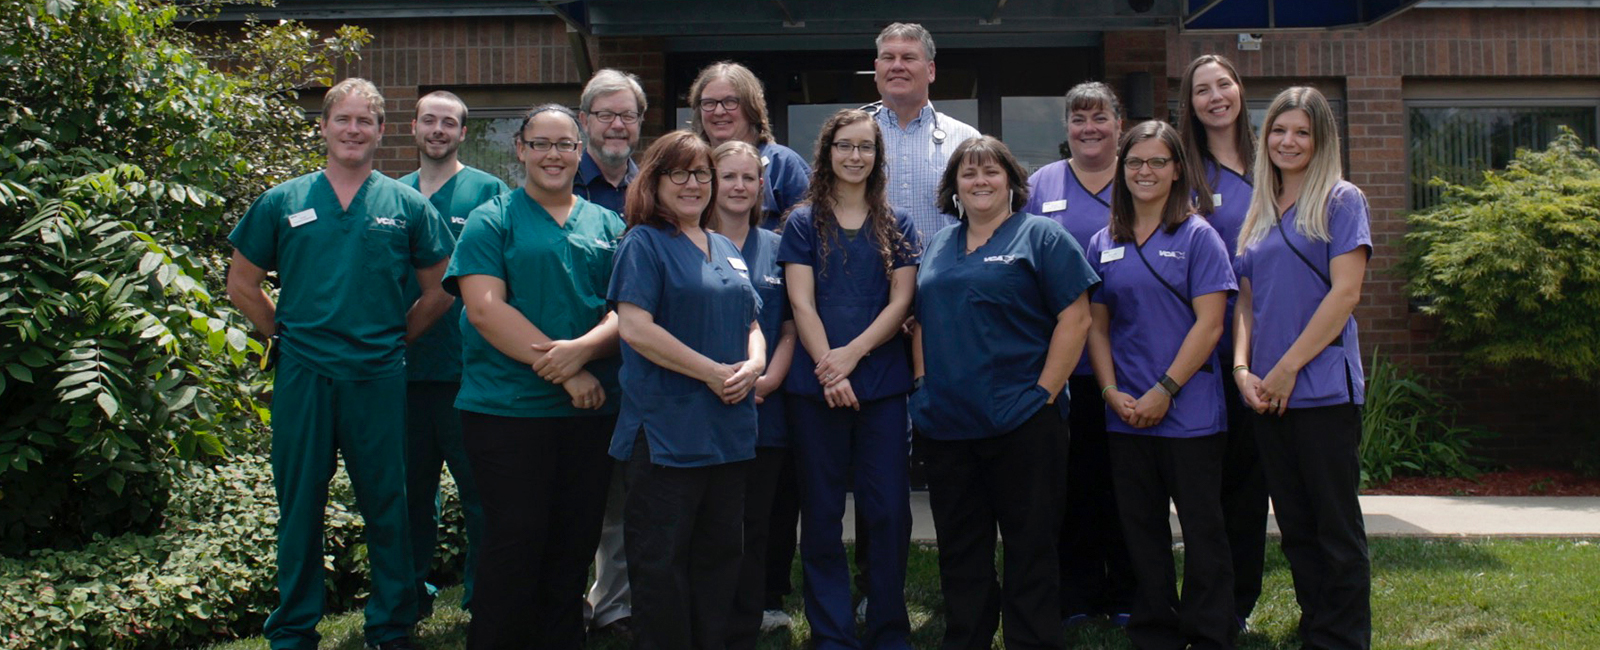 VCA College Hill Animal Hospital Team Photo